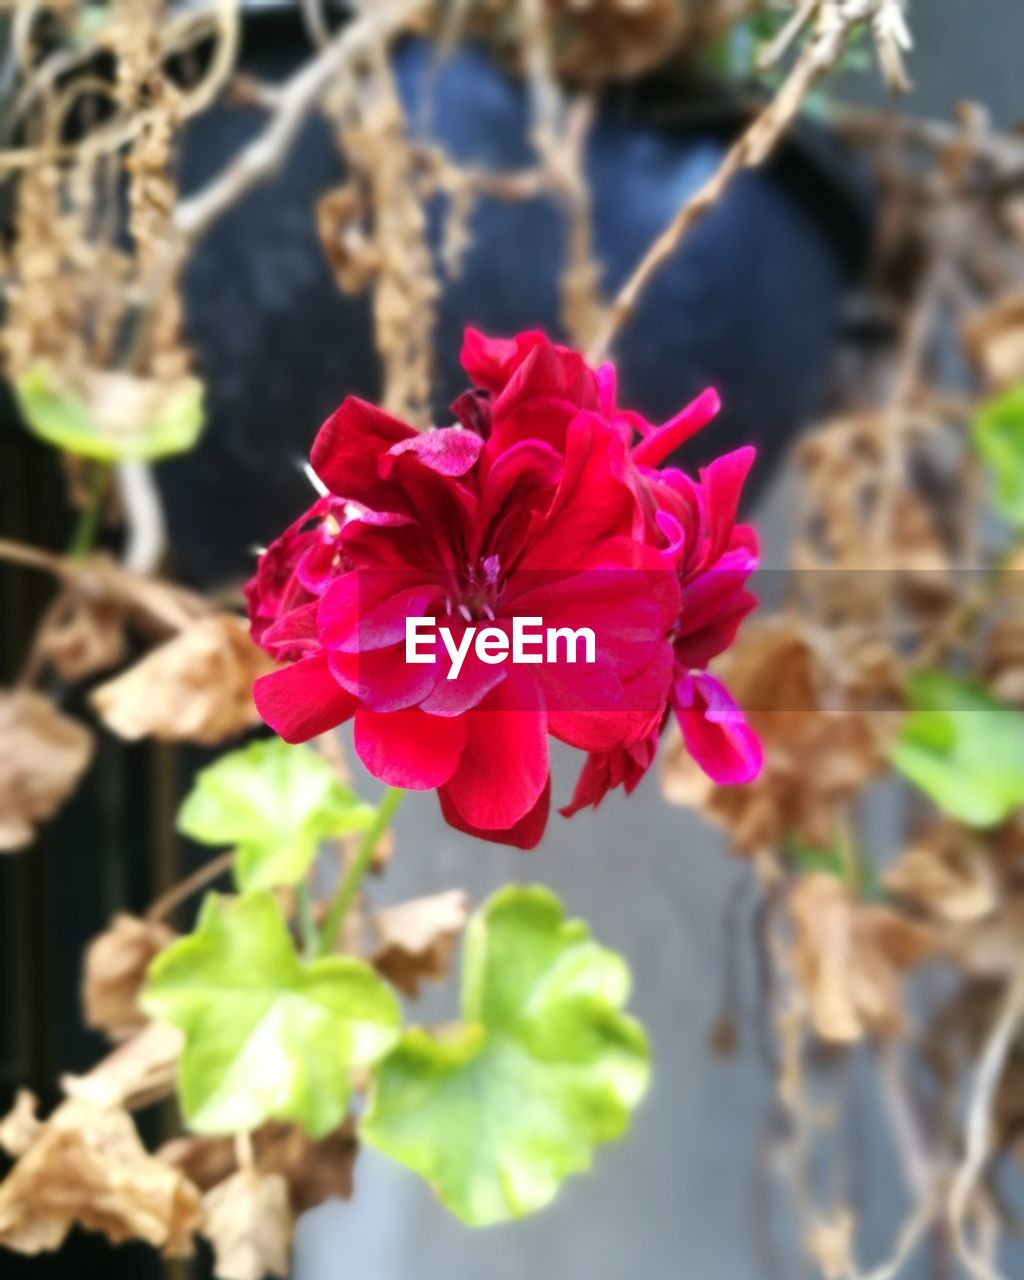 flower, pink color, beauty in nature, fragility, petal, nature, focus on foreground, no people, growth, close-up, day, flower head, outdoors, freshness, plant, blooming